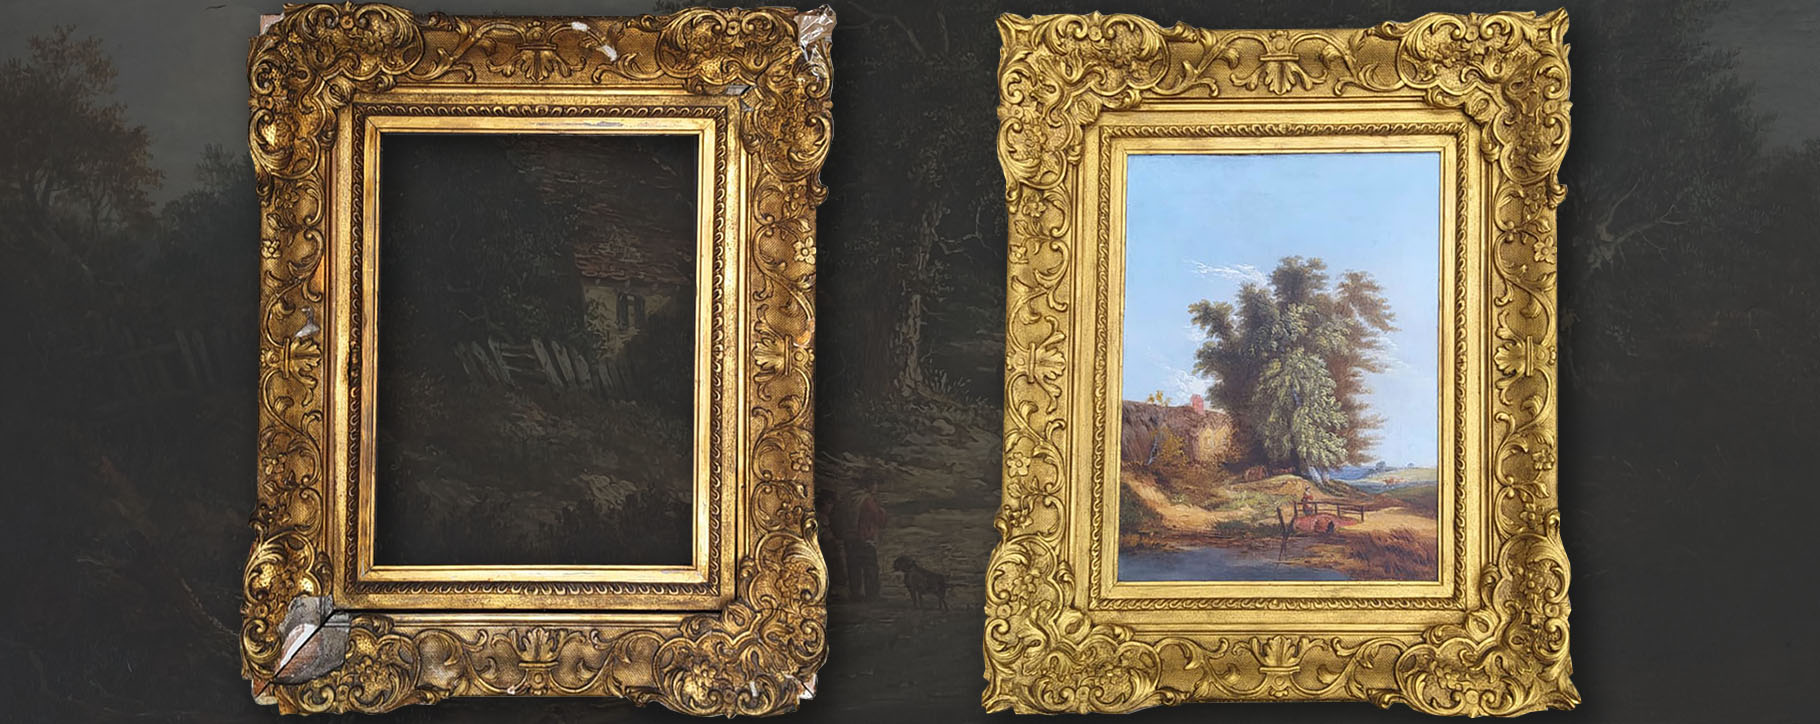 Gilded Frame With Painting Restore